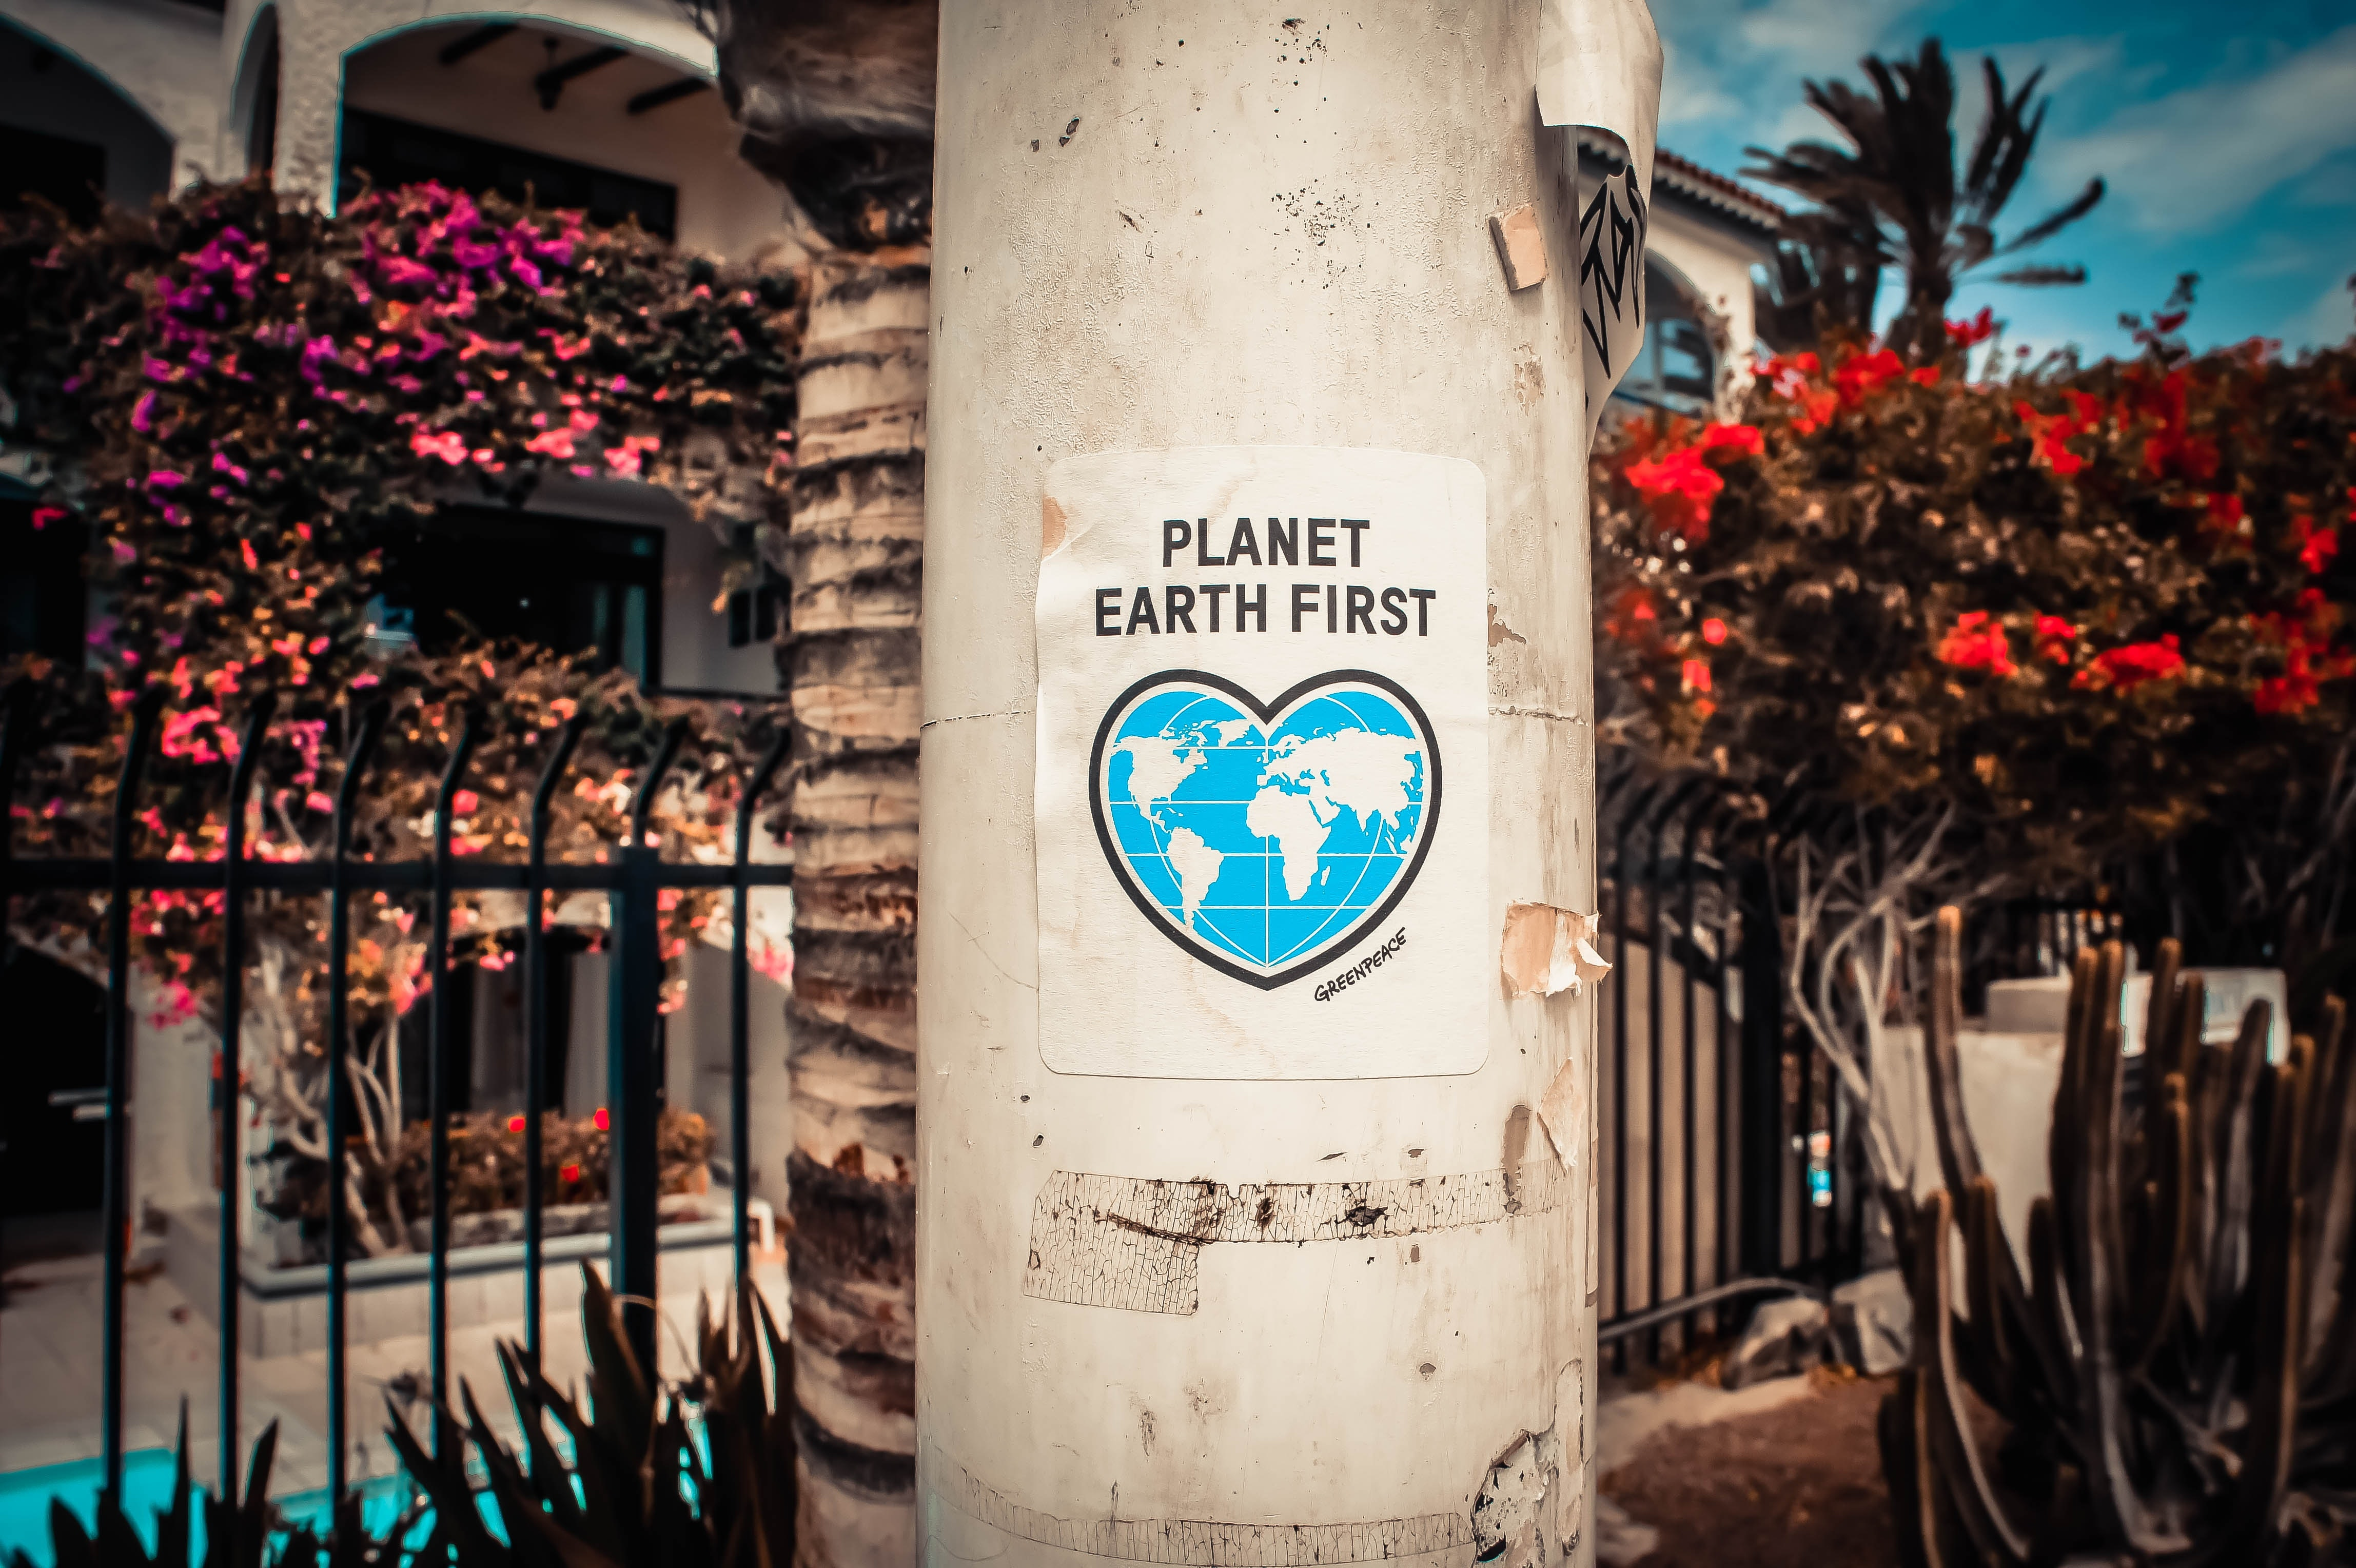 image with poster saying Planet Earth First